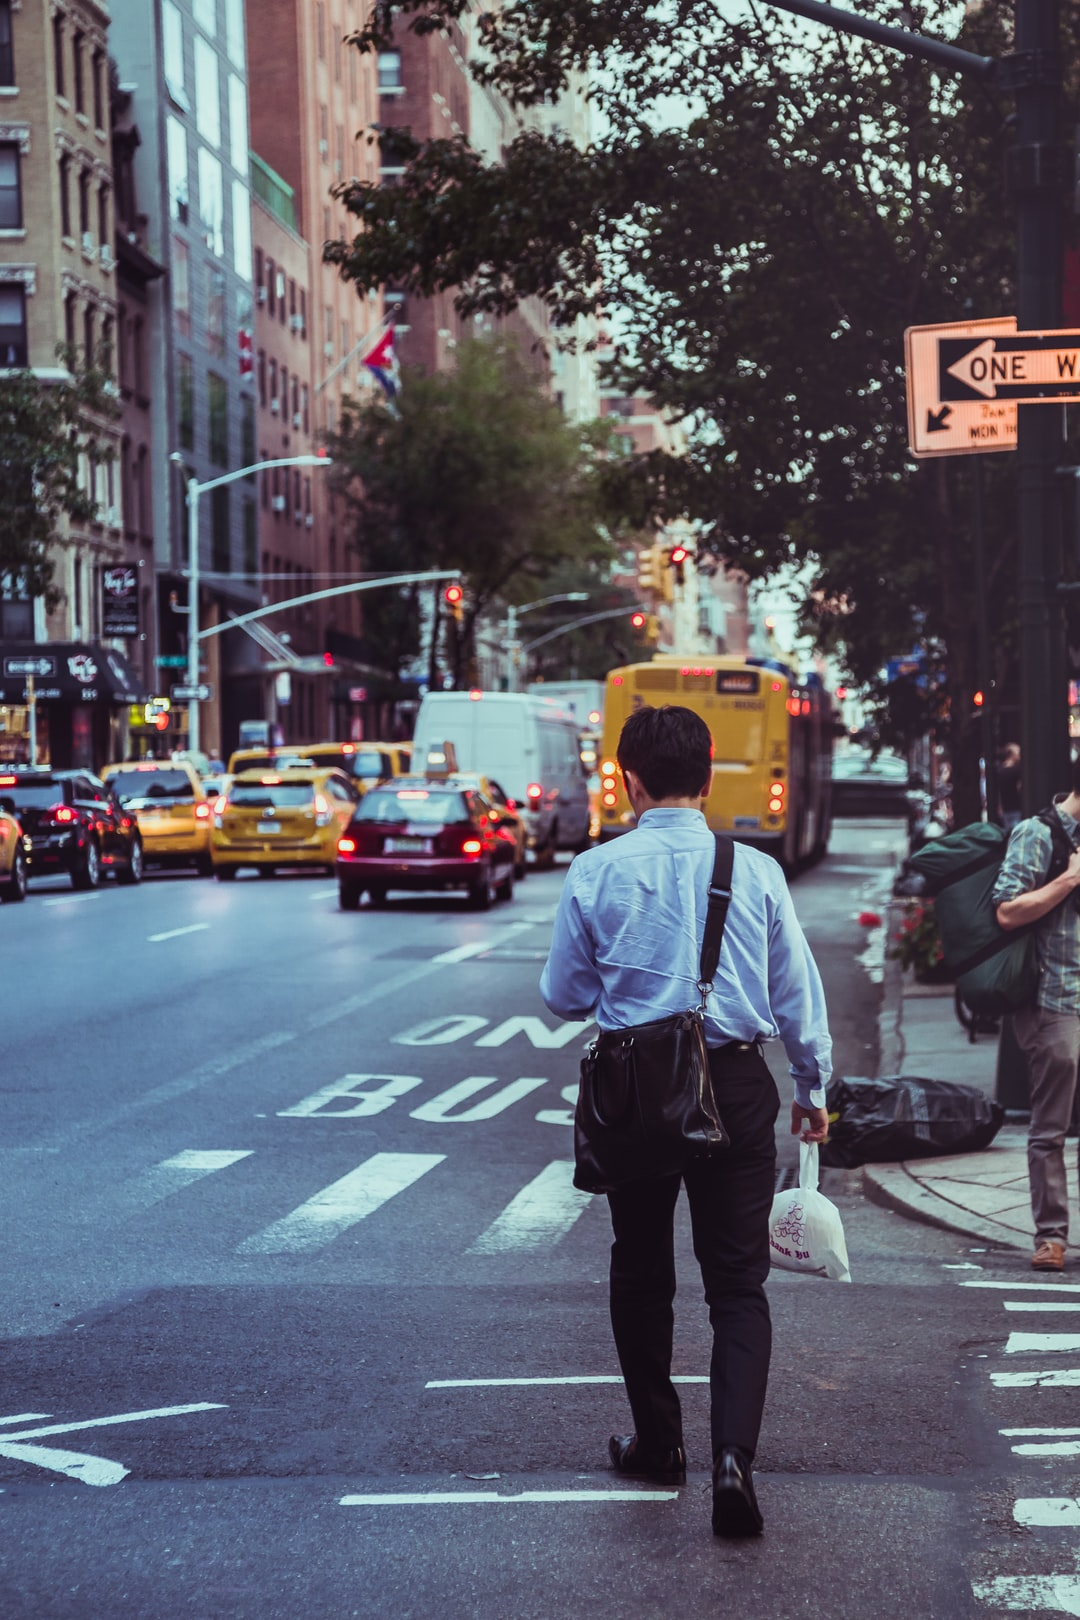 Just a flash back to New York trip last year. Trying new color grading on some skipped photos.  I like the mood.